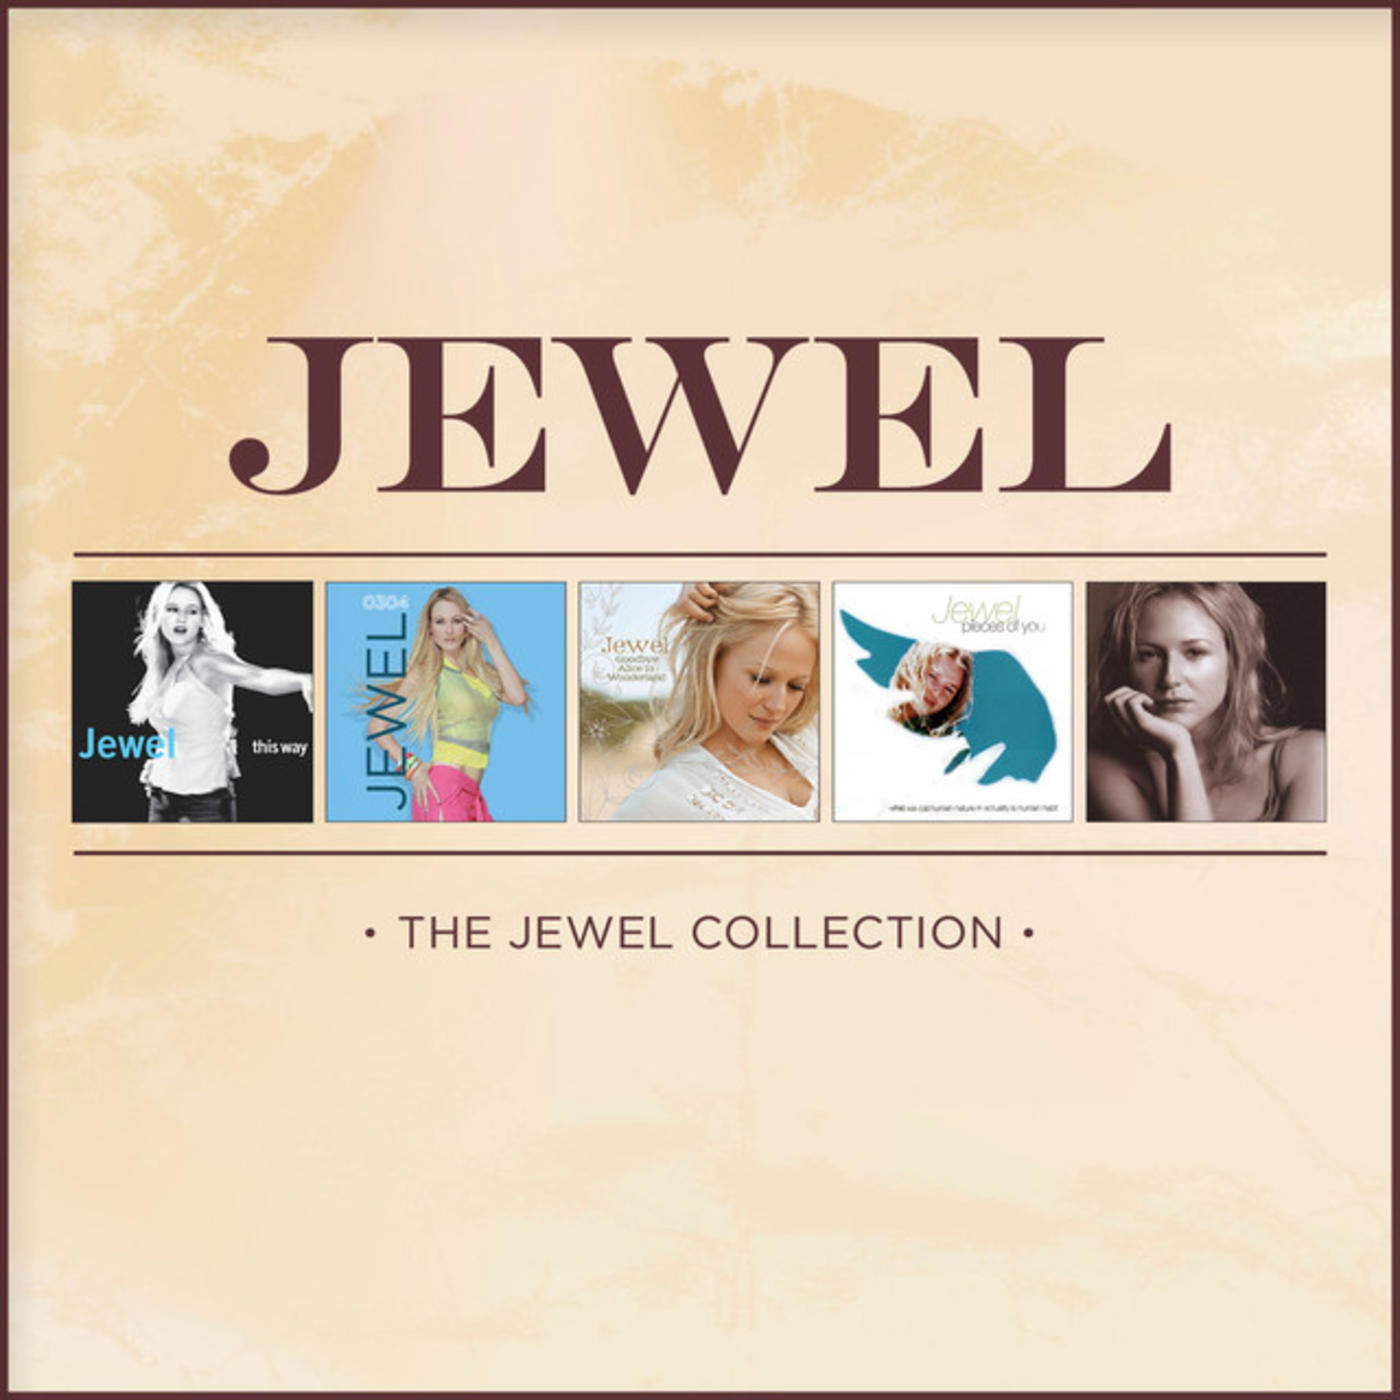 The Jewel Collection (JEWEL)